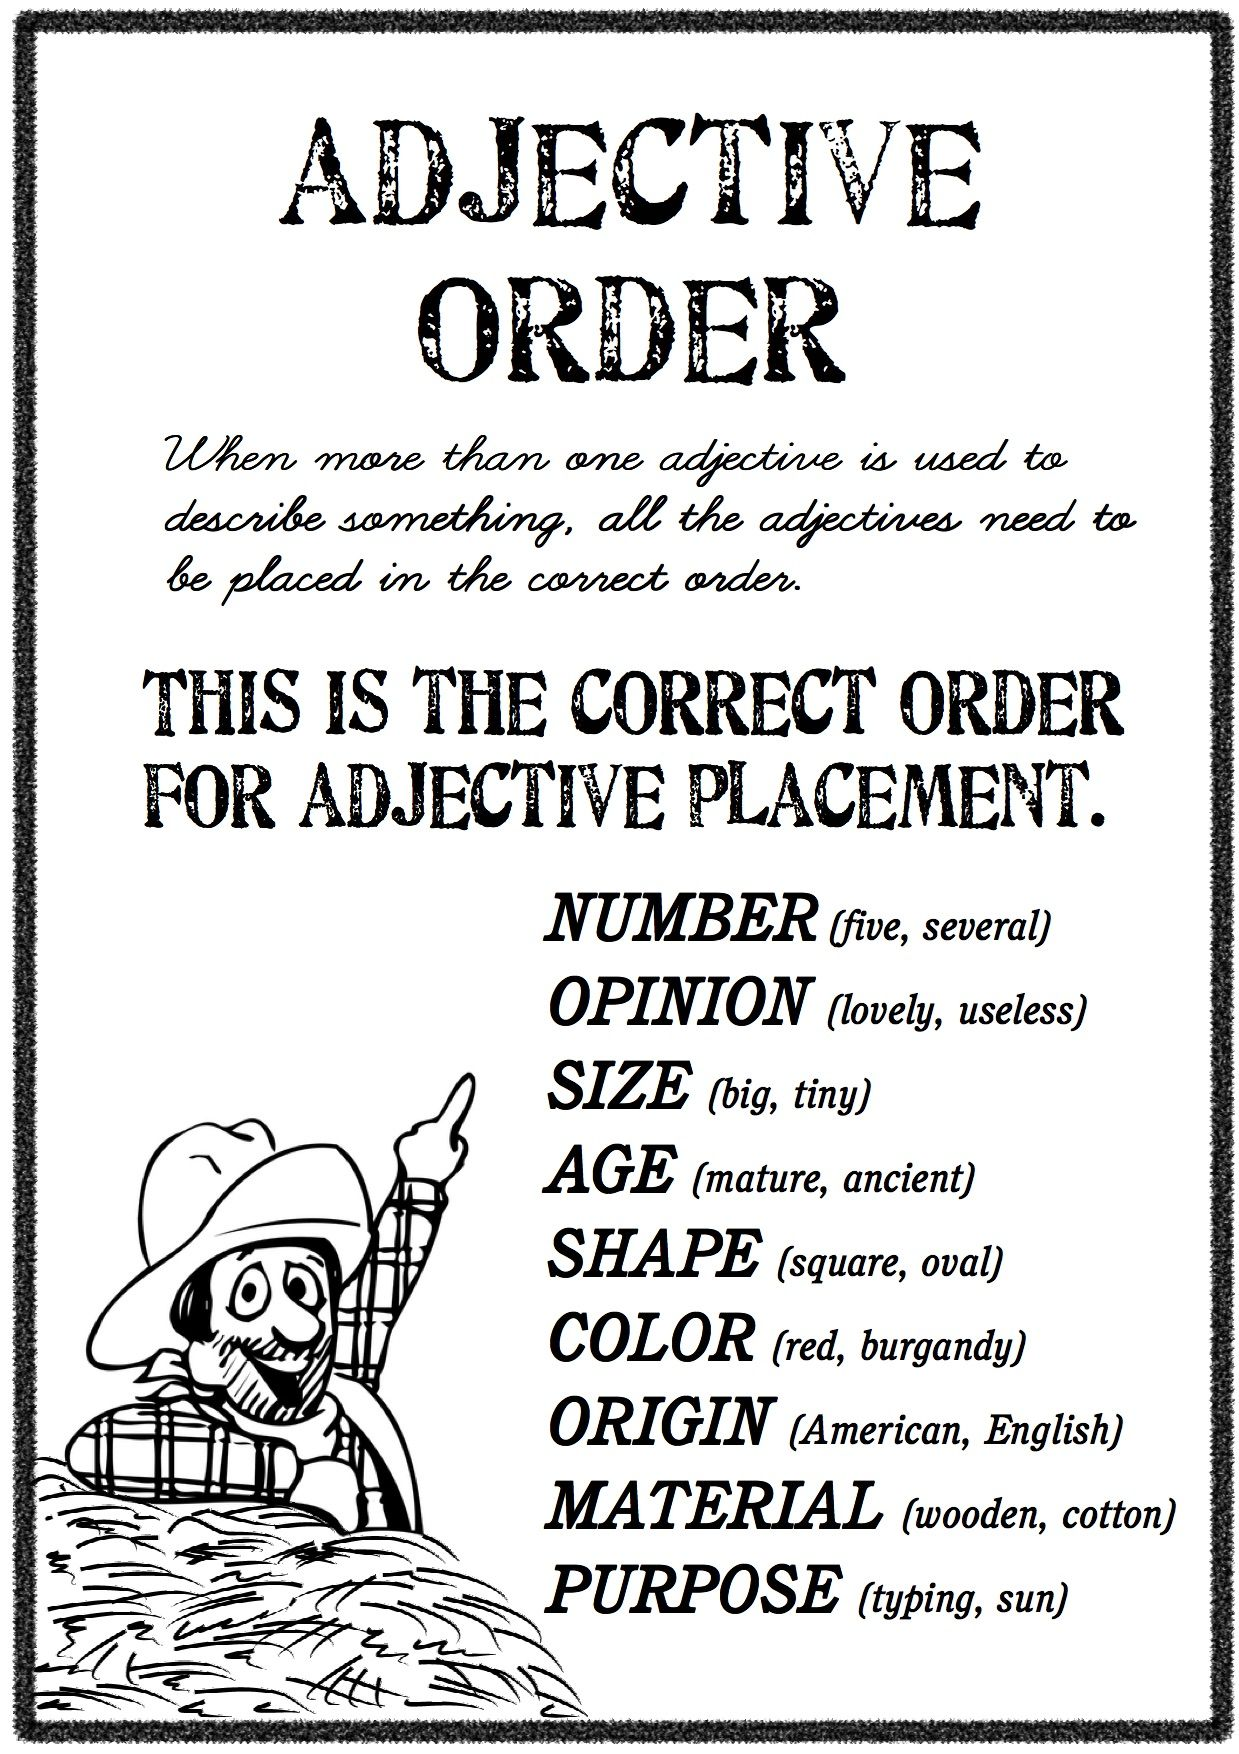 The correct order adjective order is number, opinion, size